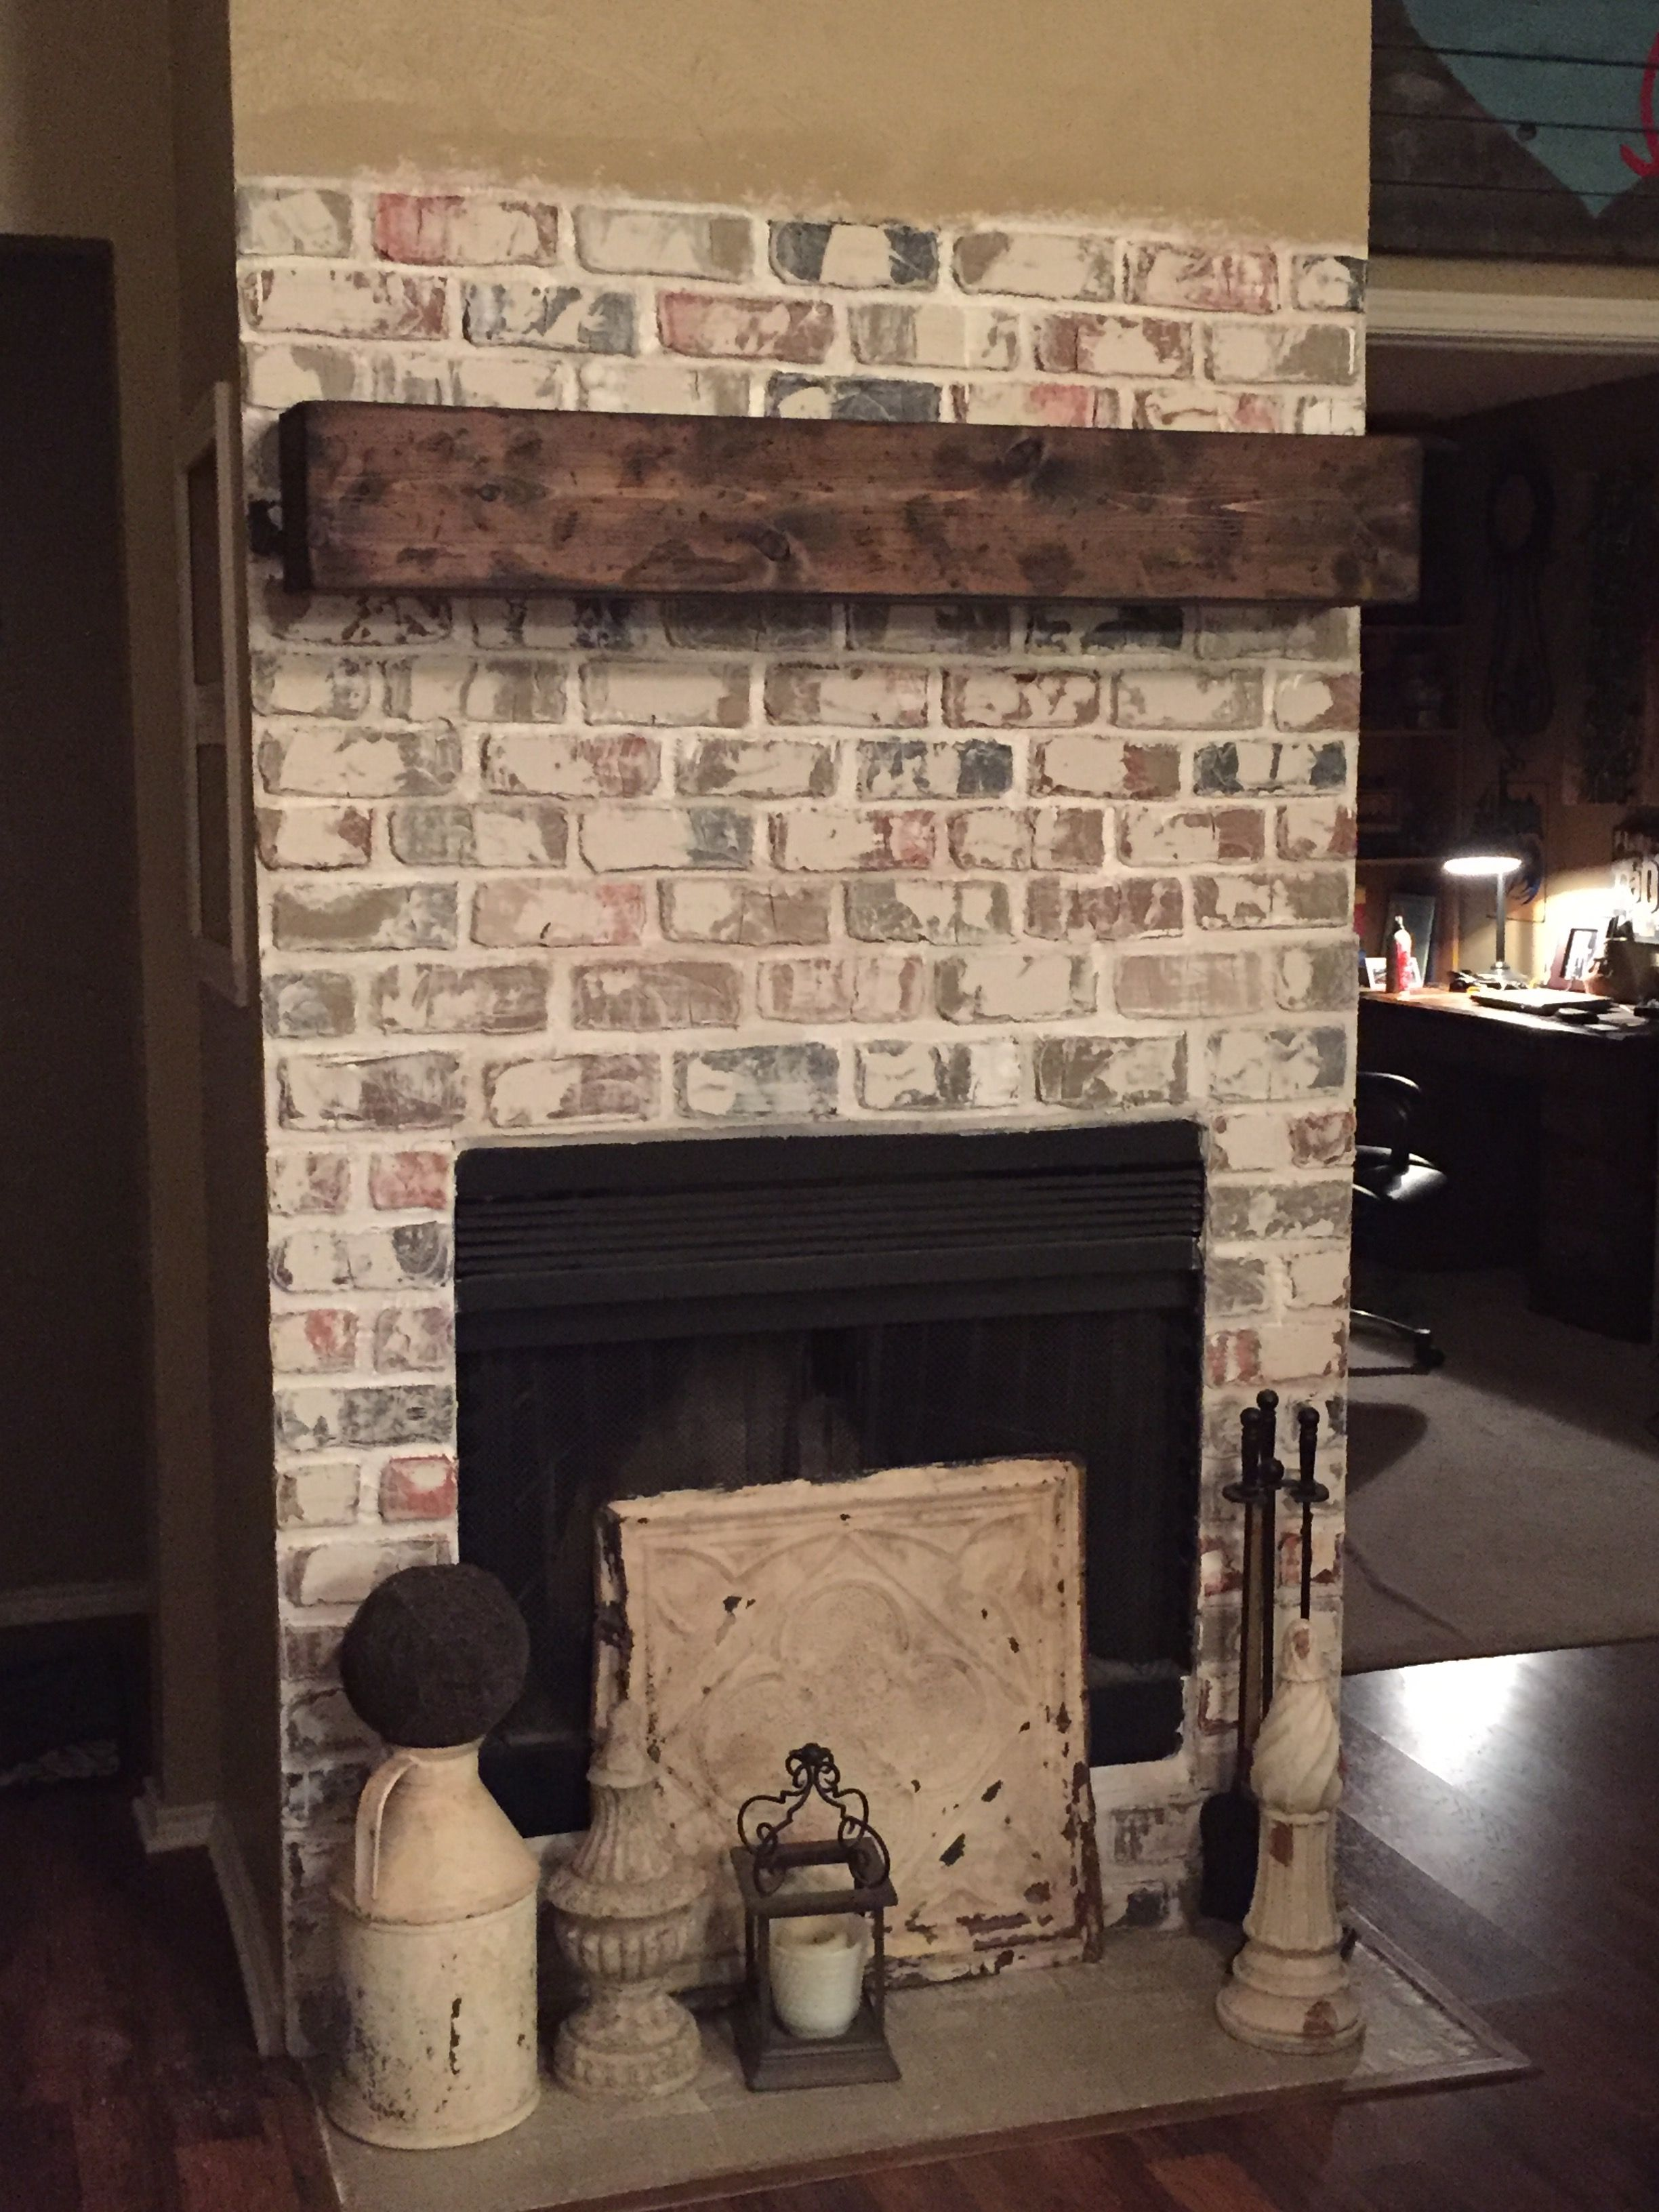 Faux Bricks Cover Up Old Tile New Mantle Added Faux Brick Walls Faux Brick Brick Wall